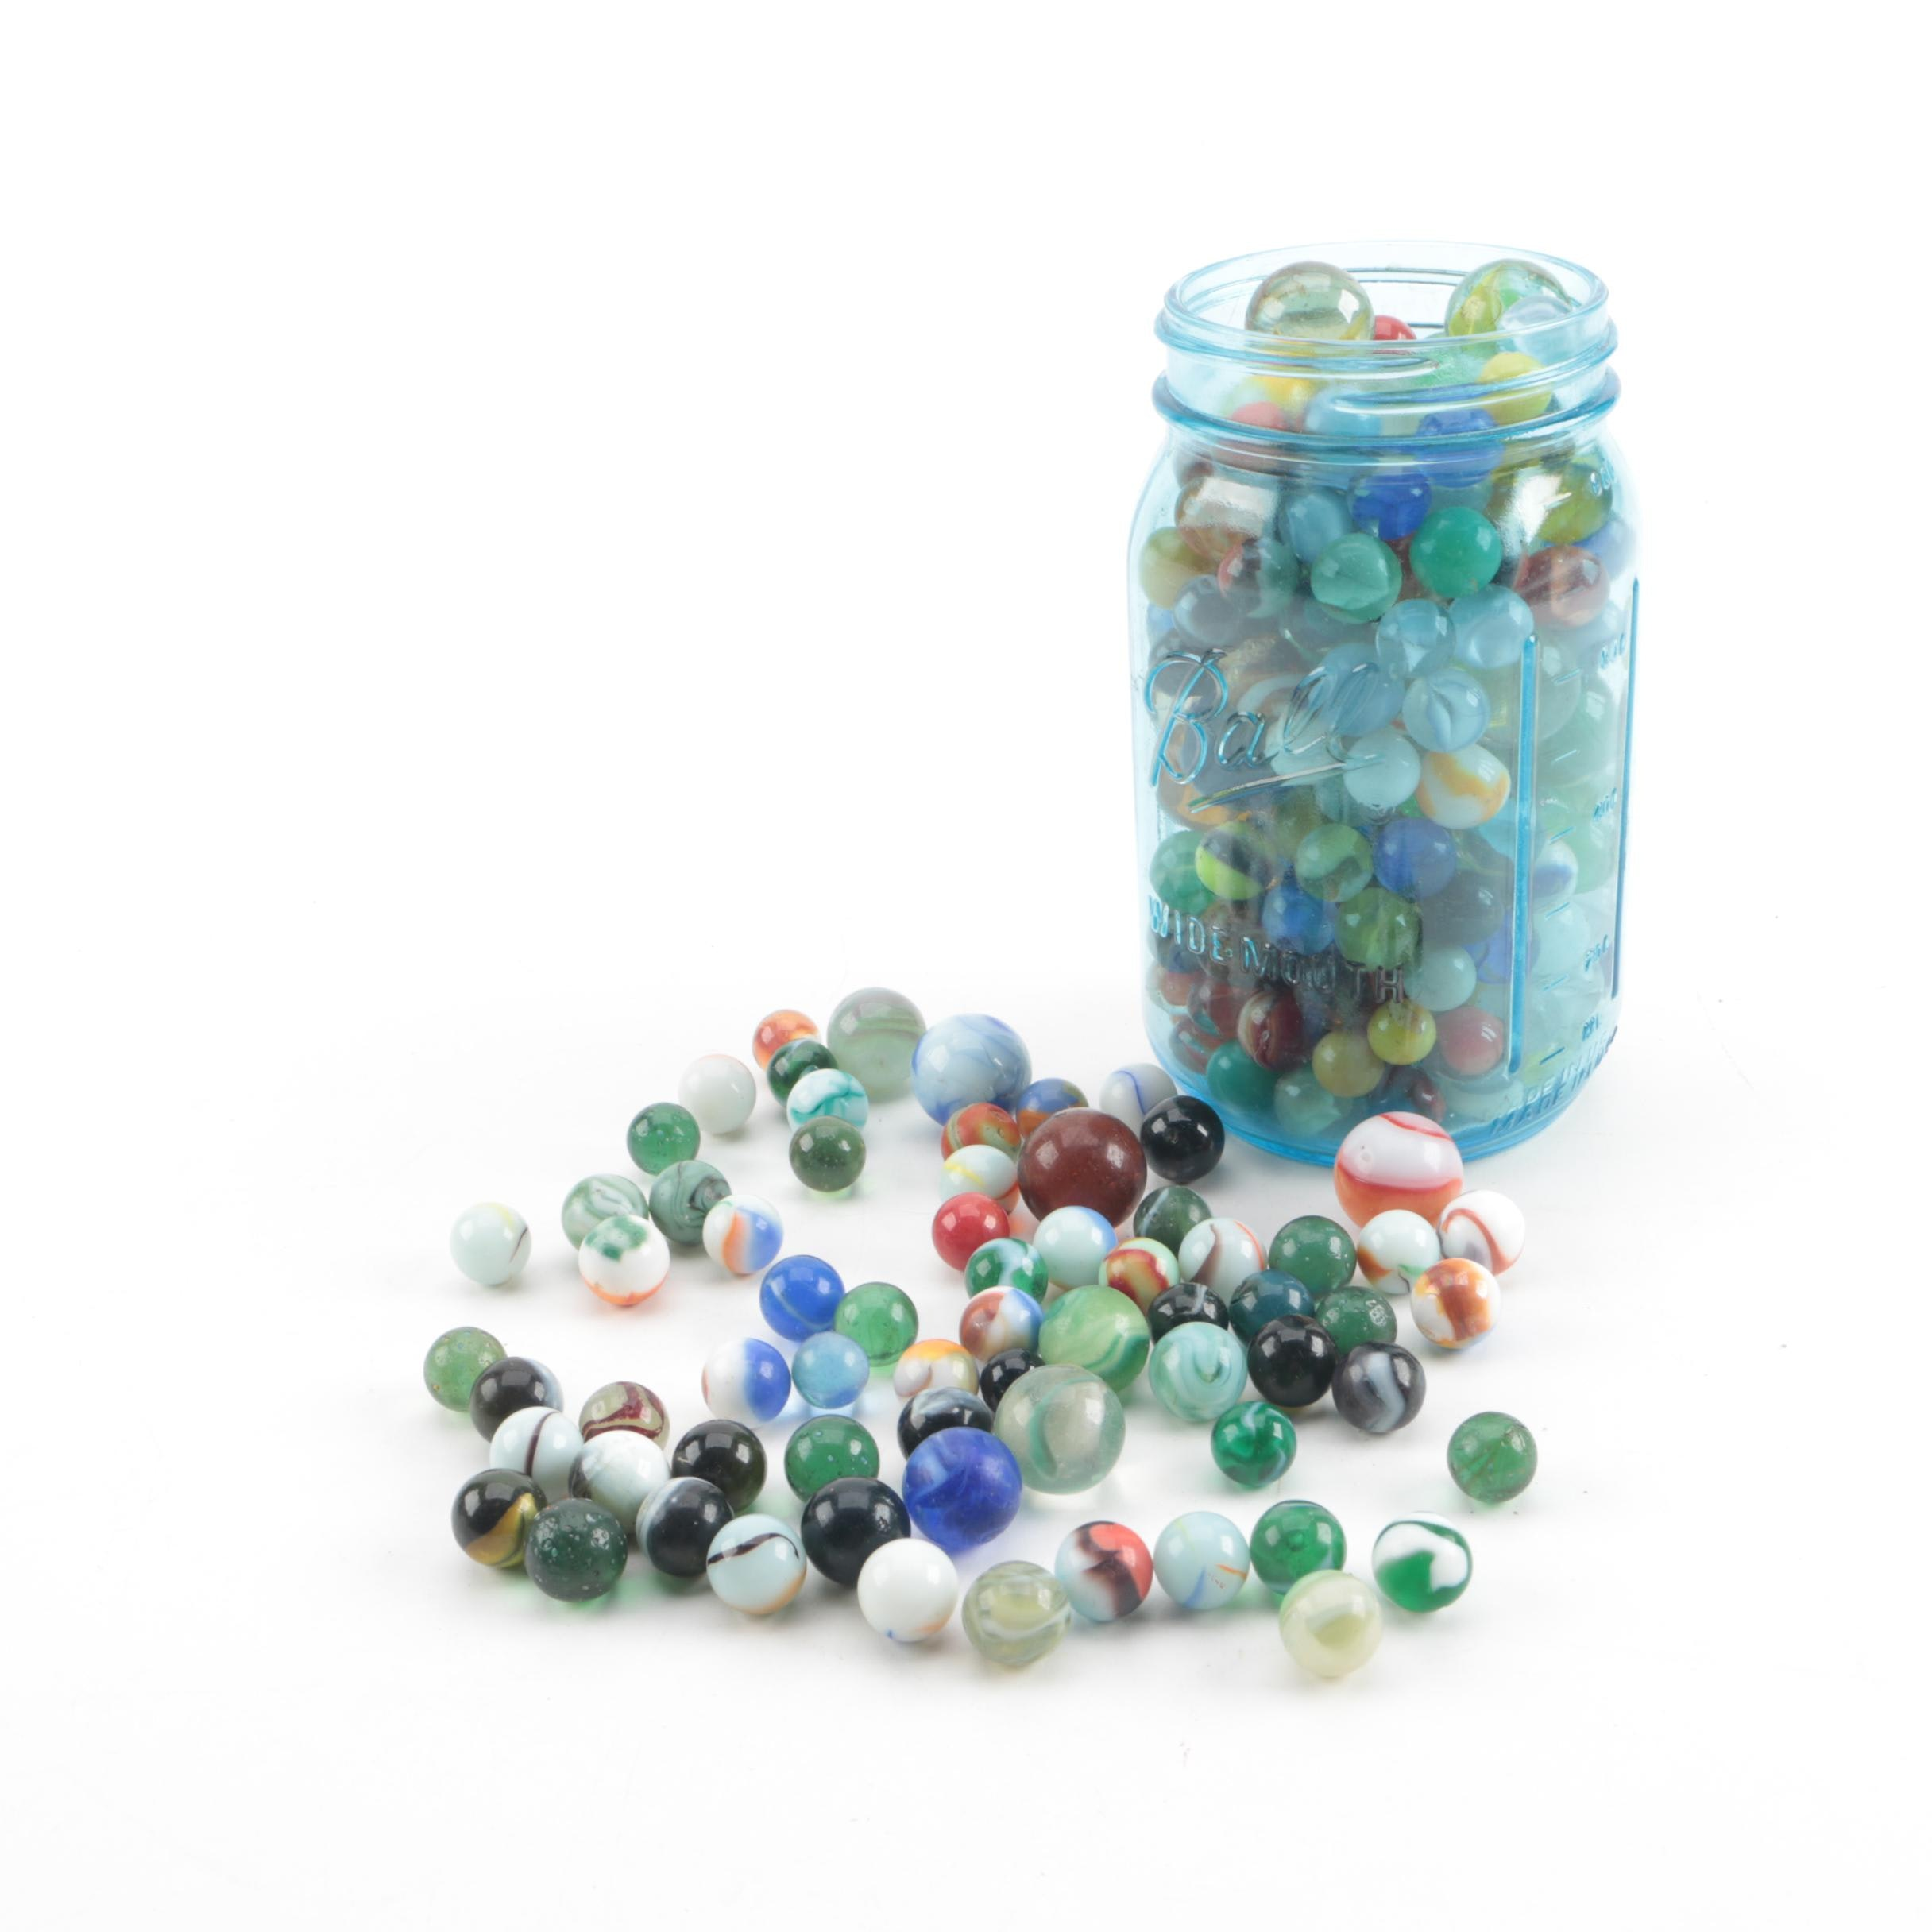 Glass Marbles with Blue Mason Jar